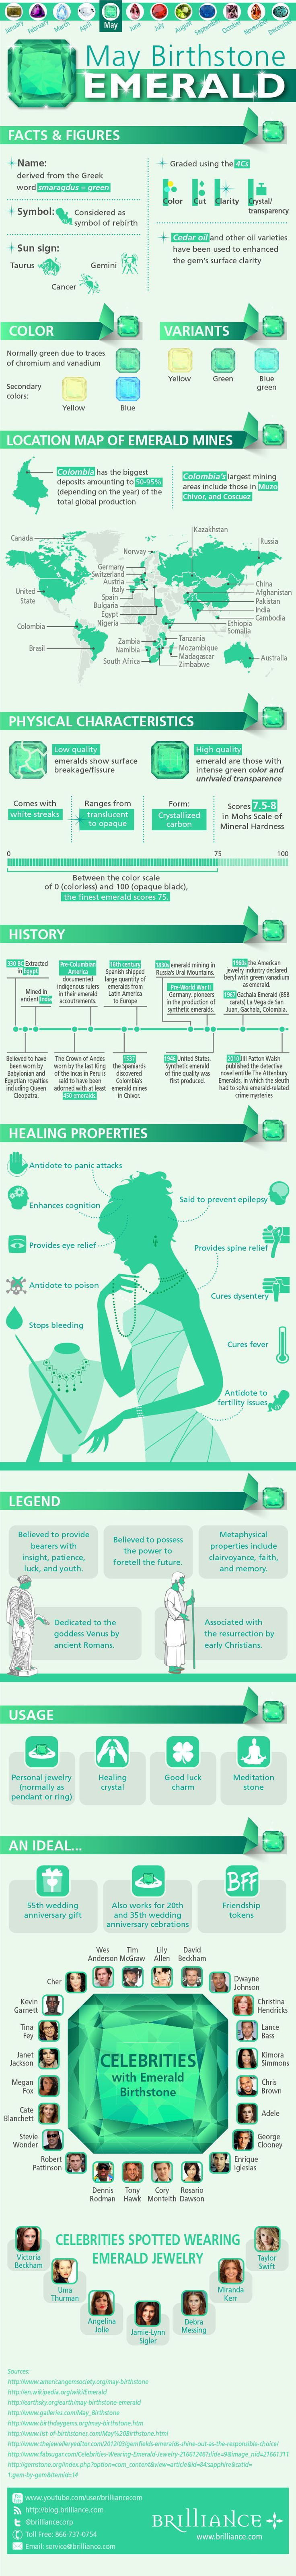 Emerald, The Birthstone of May. Infographic